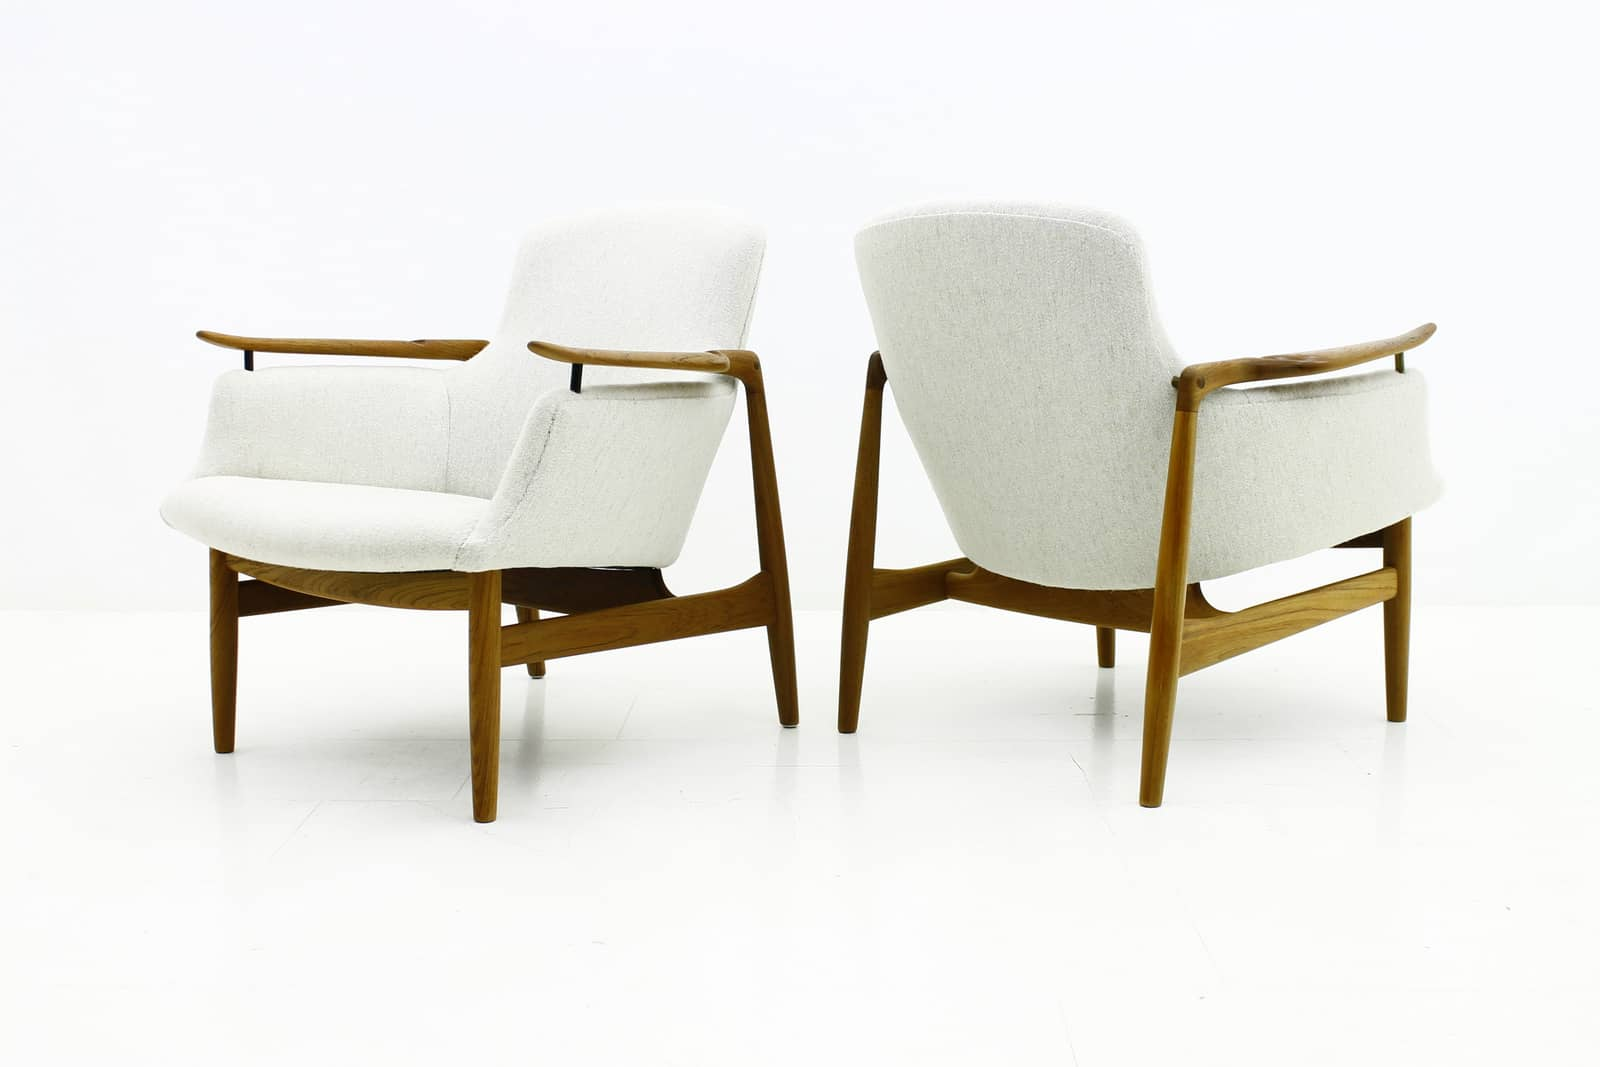 Pair Finn Juhl Lounge Chairs NV 53 for Niels Vodder, 1953